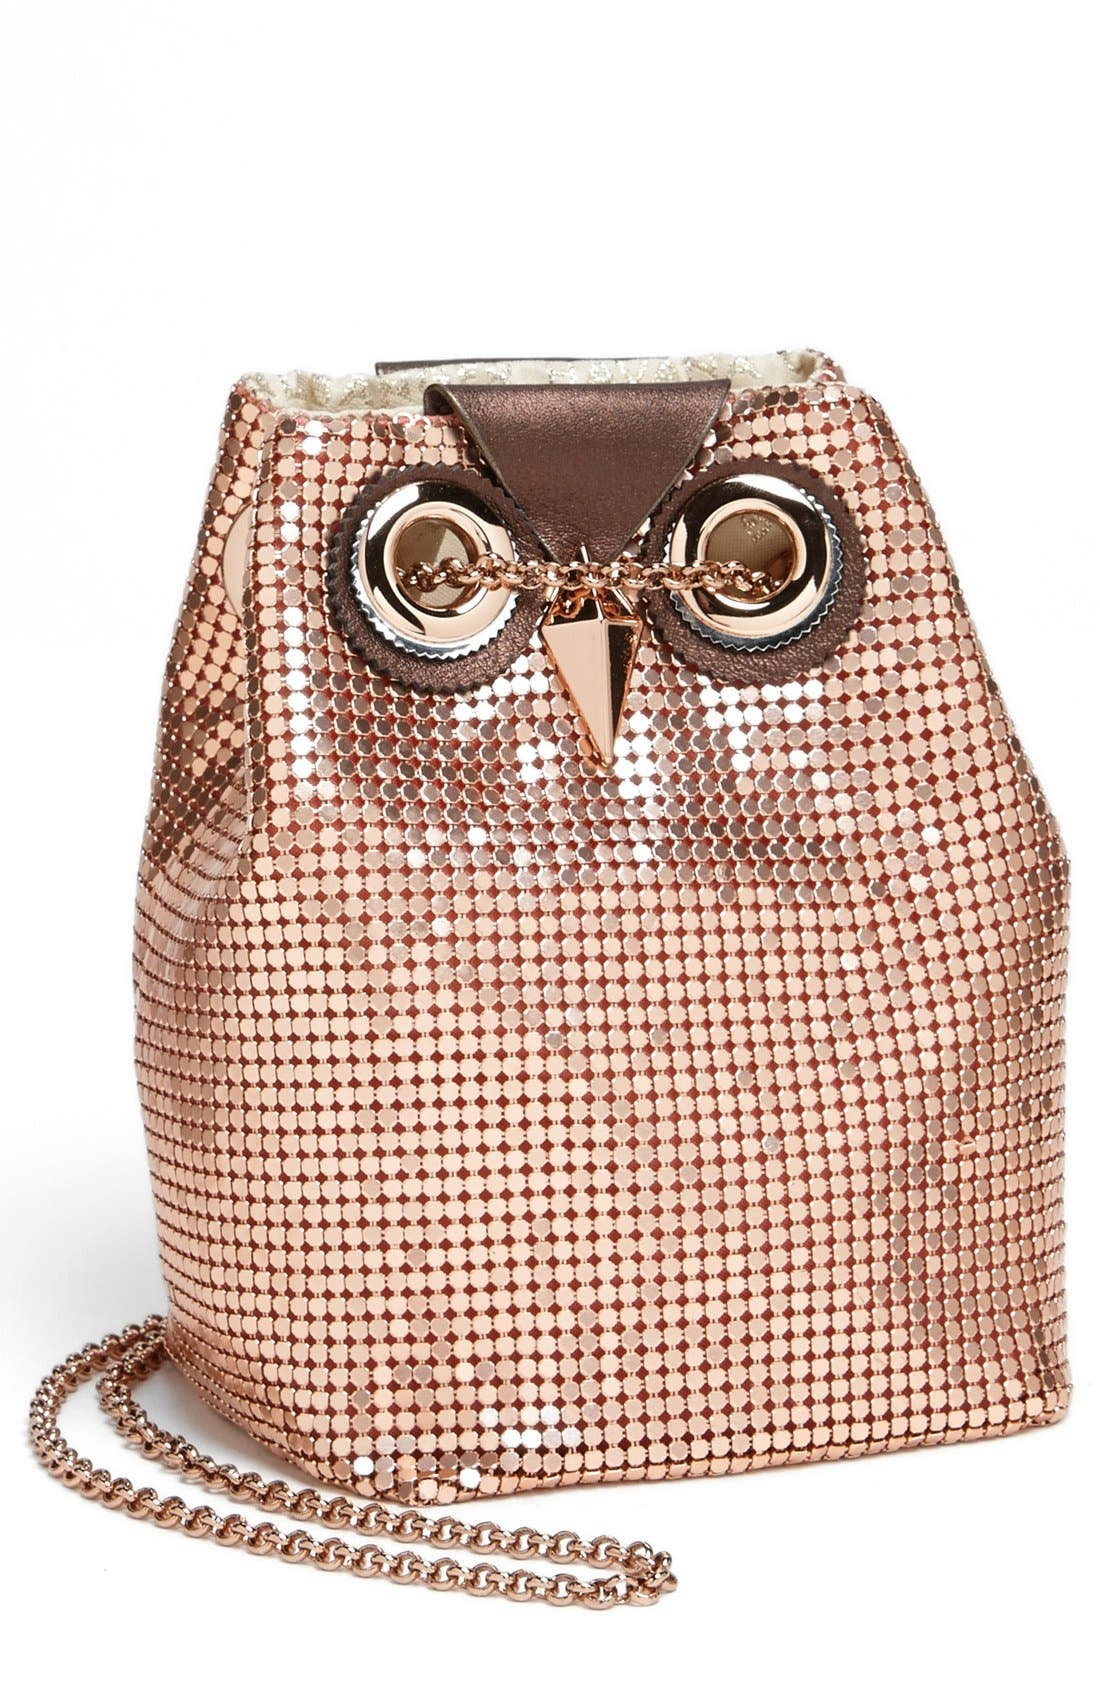 Main Image - kate spade new york 'evening belle - night owl' bag